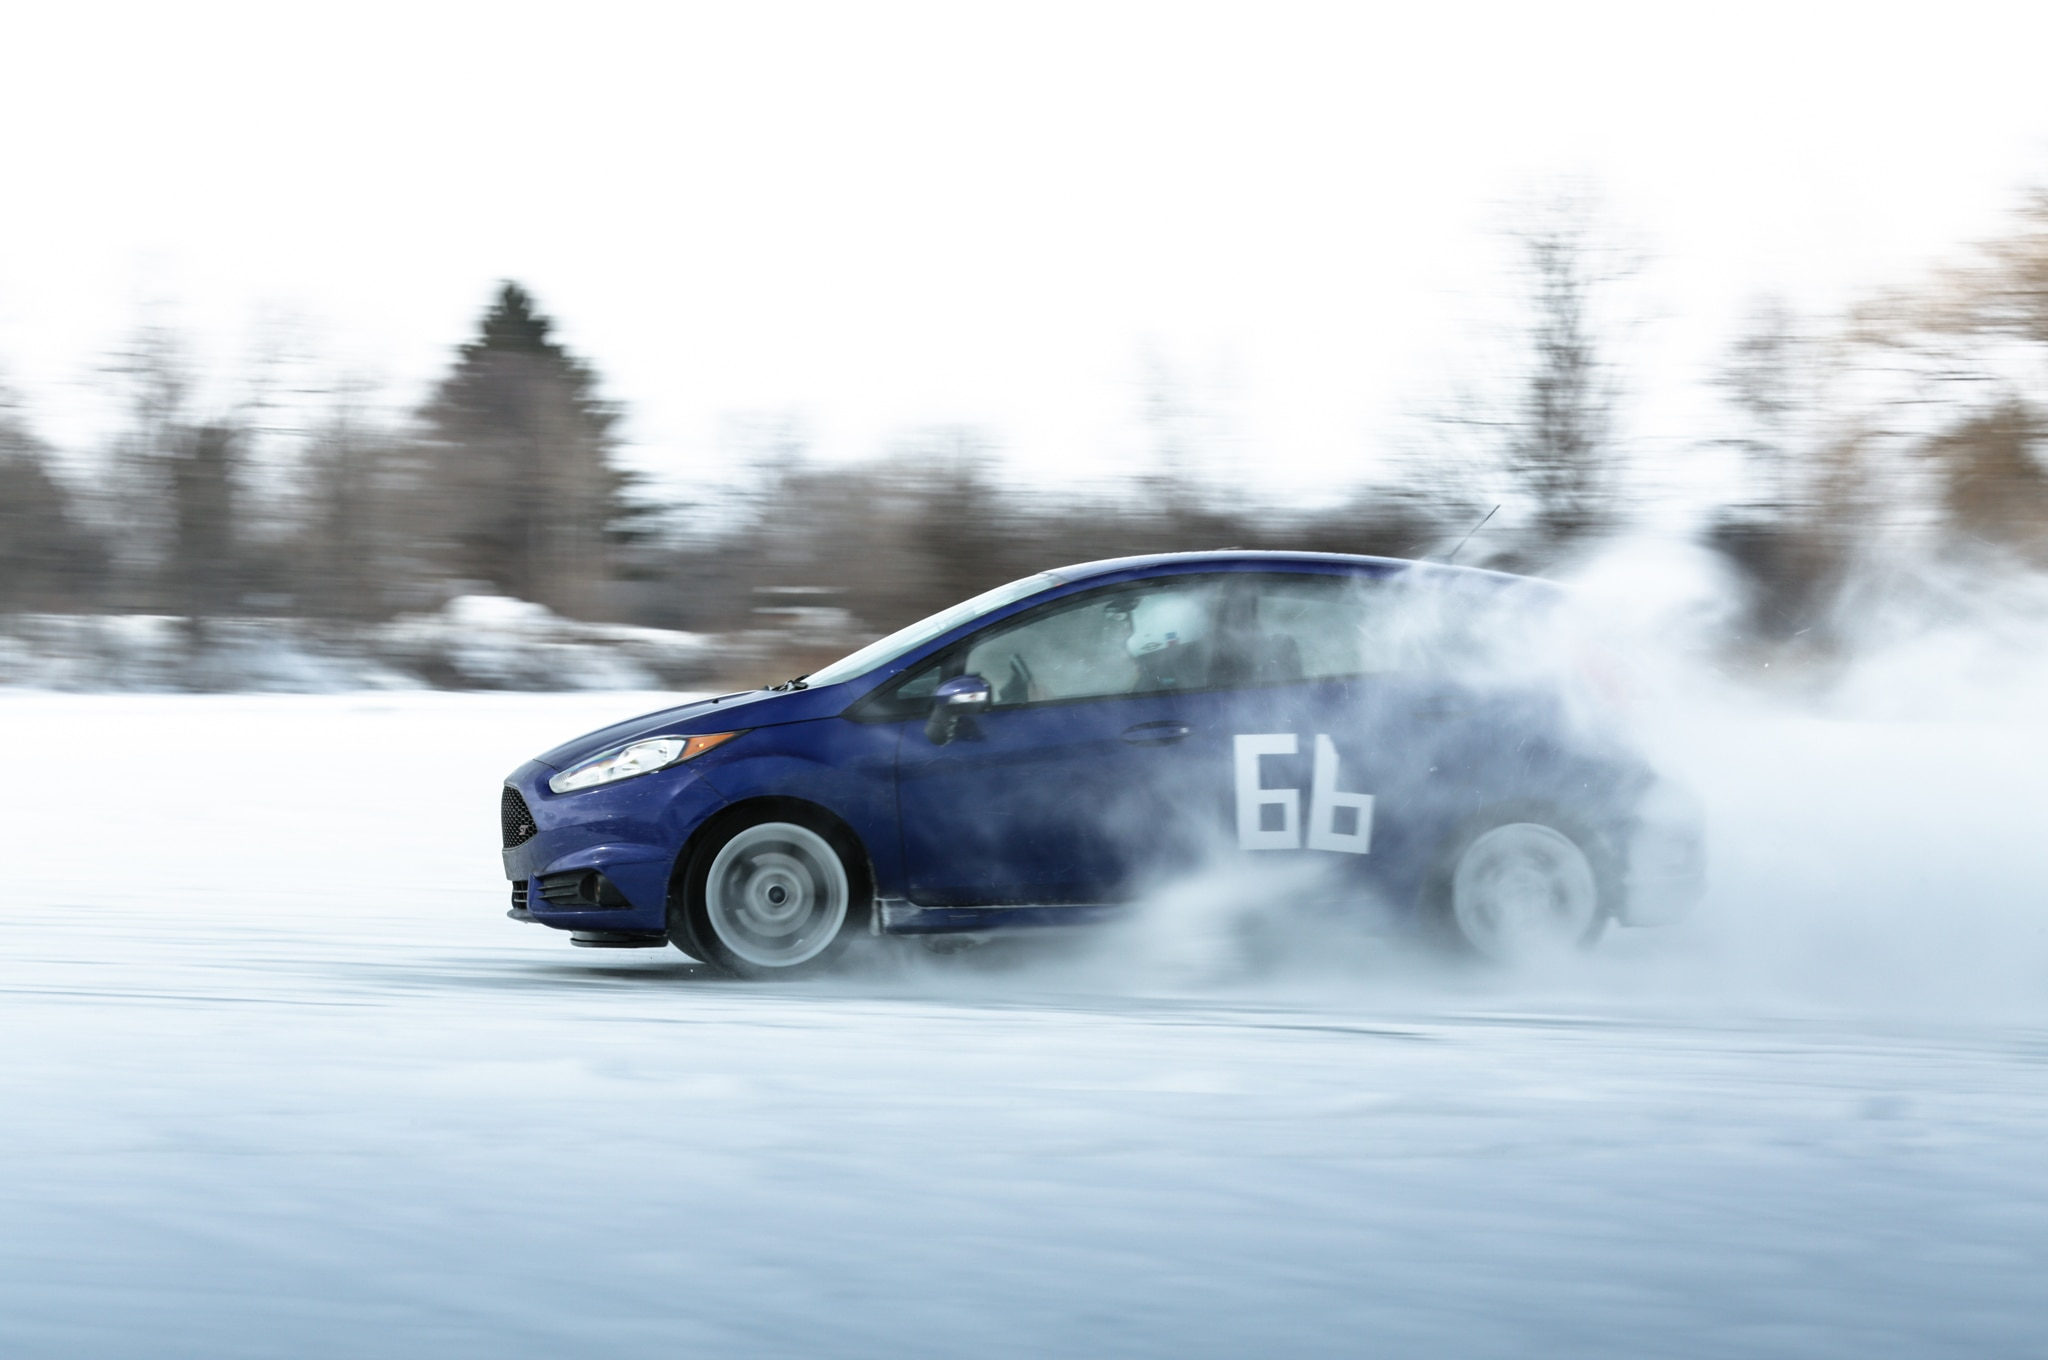 2014 Ford Fiesta St The St Goes Ice Racing